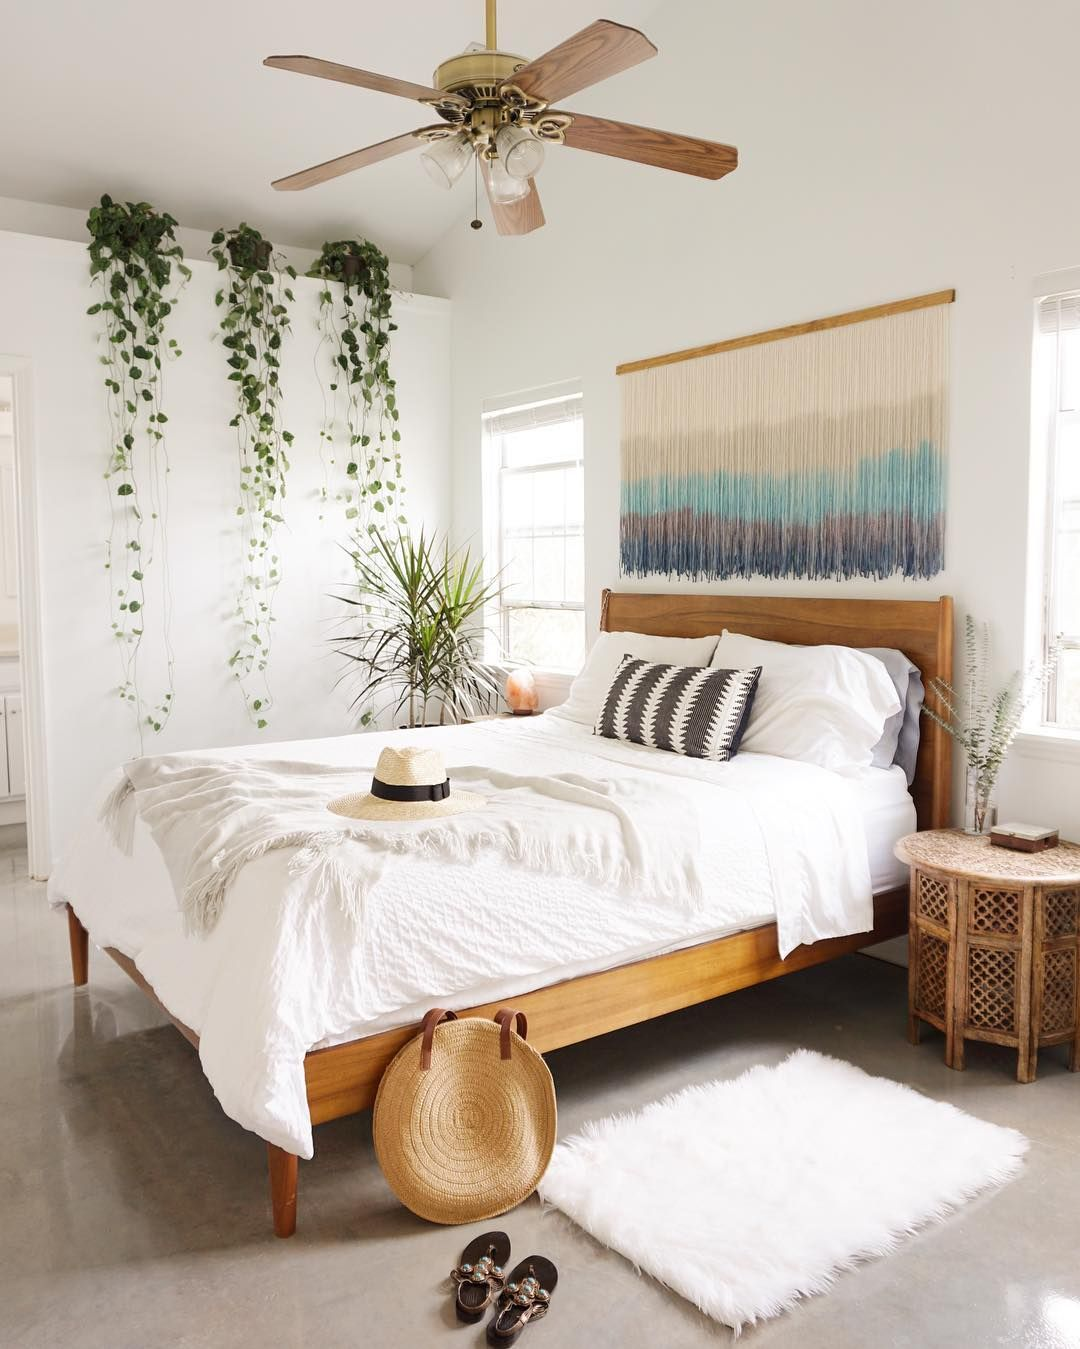 Bohemian Bedroom with draped vines and wood platform bed via @theboholoft